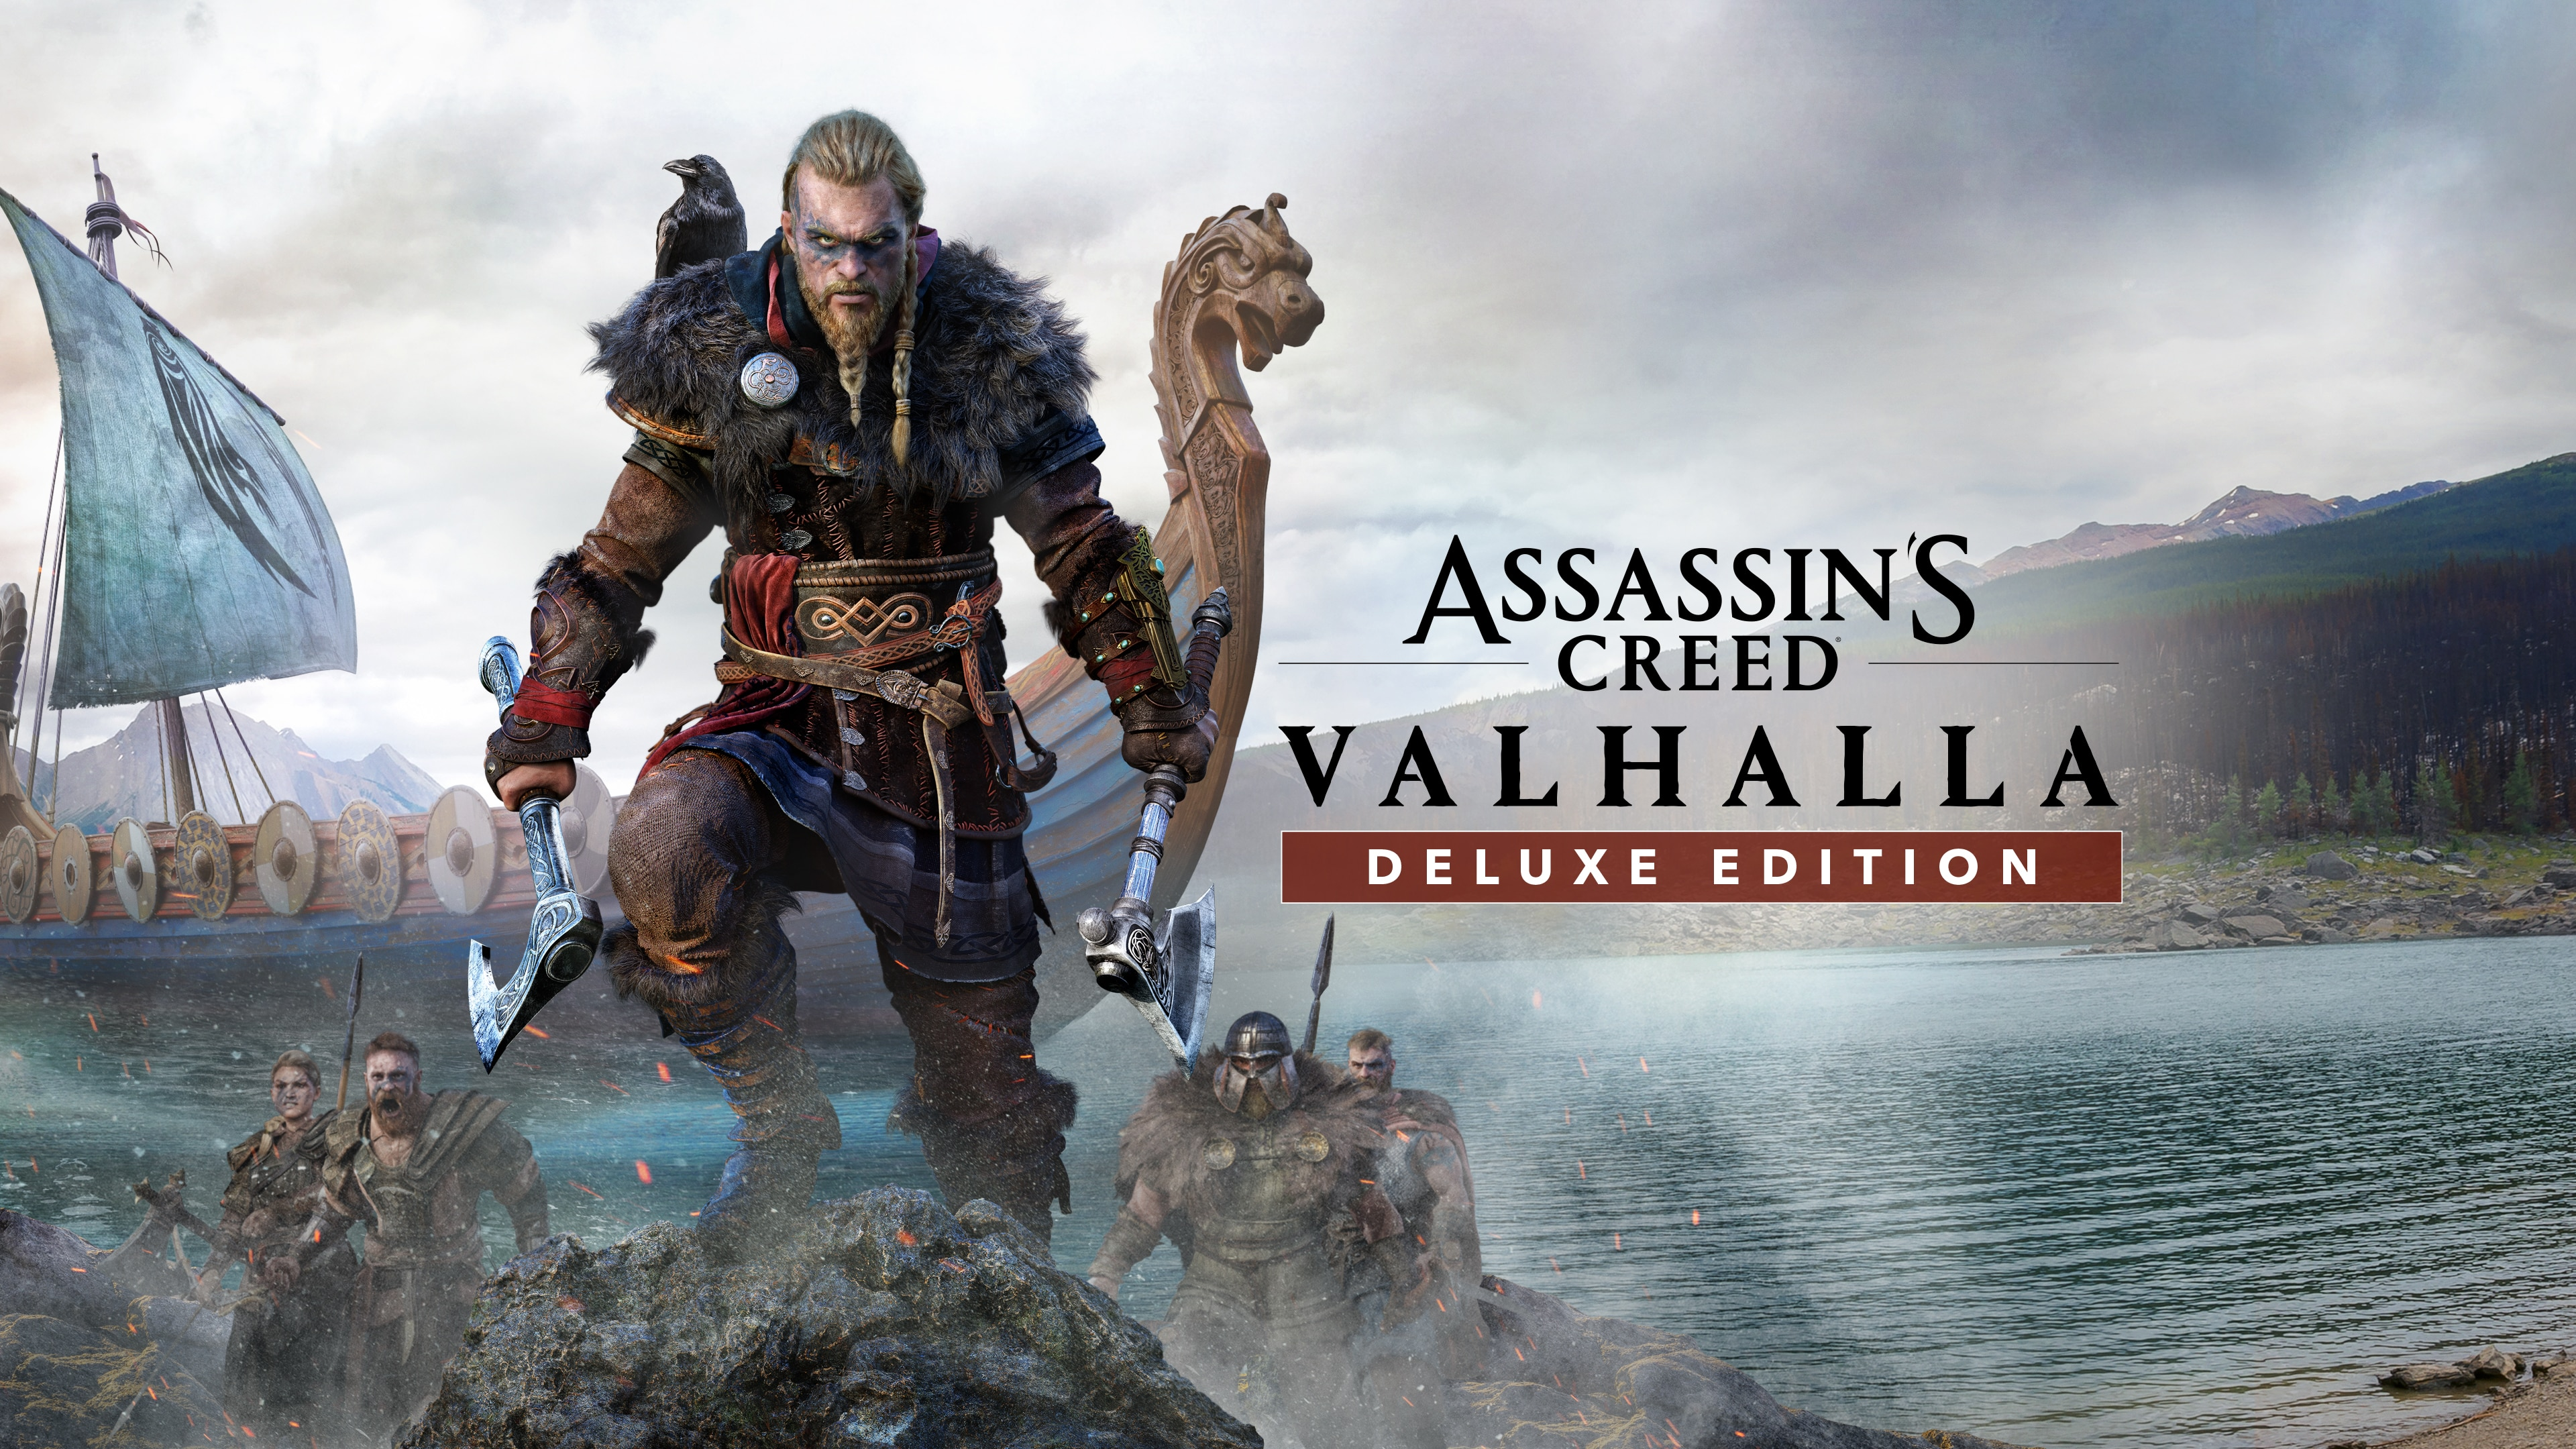 Assassin's Creed Valhalla Deluxe PS4 & PS5